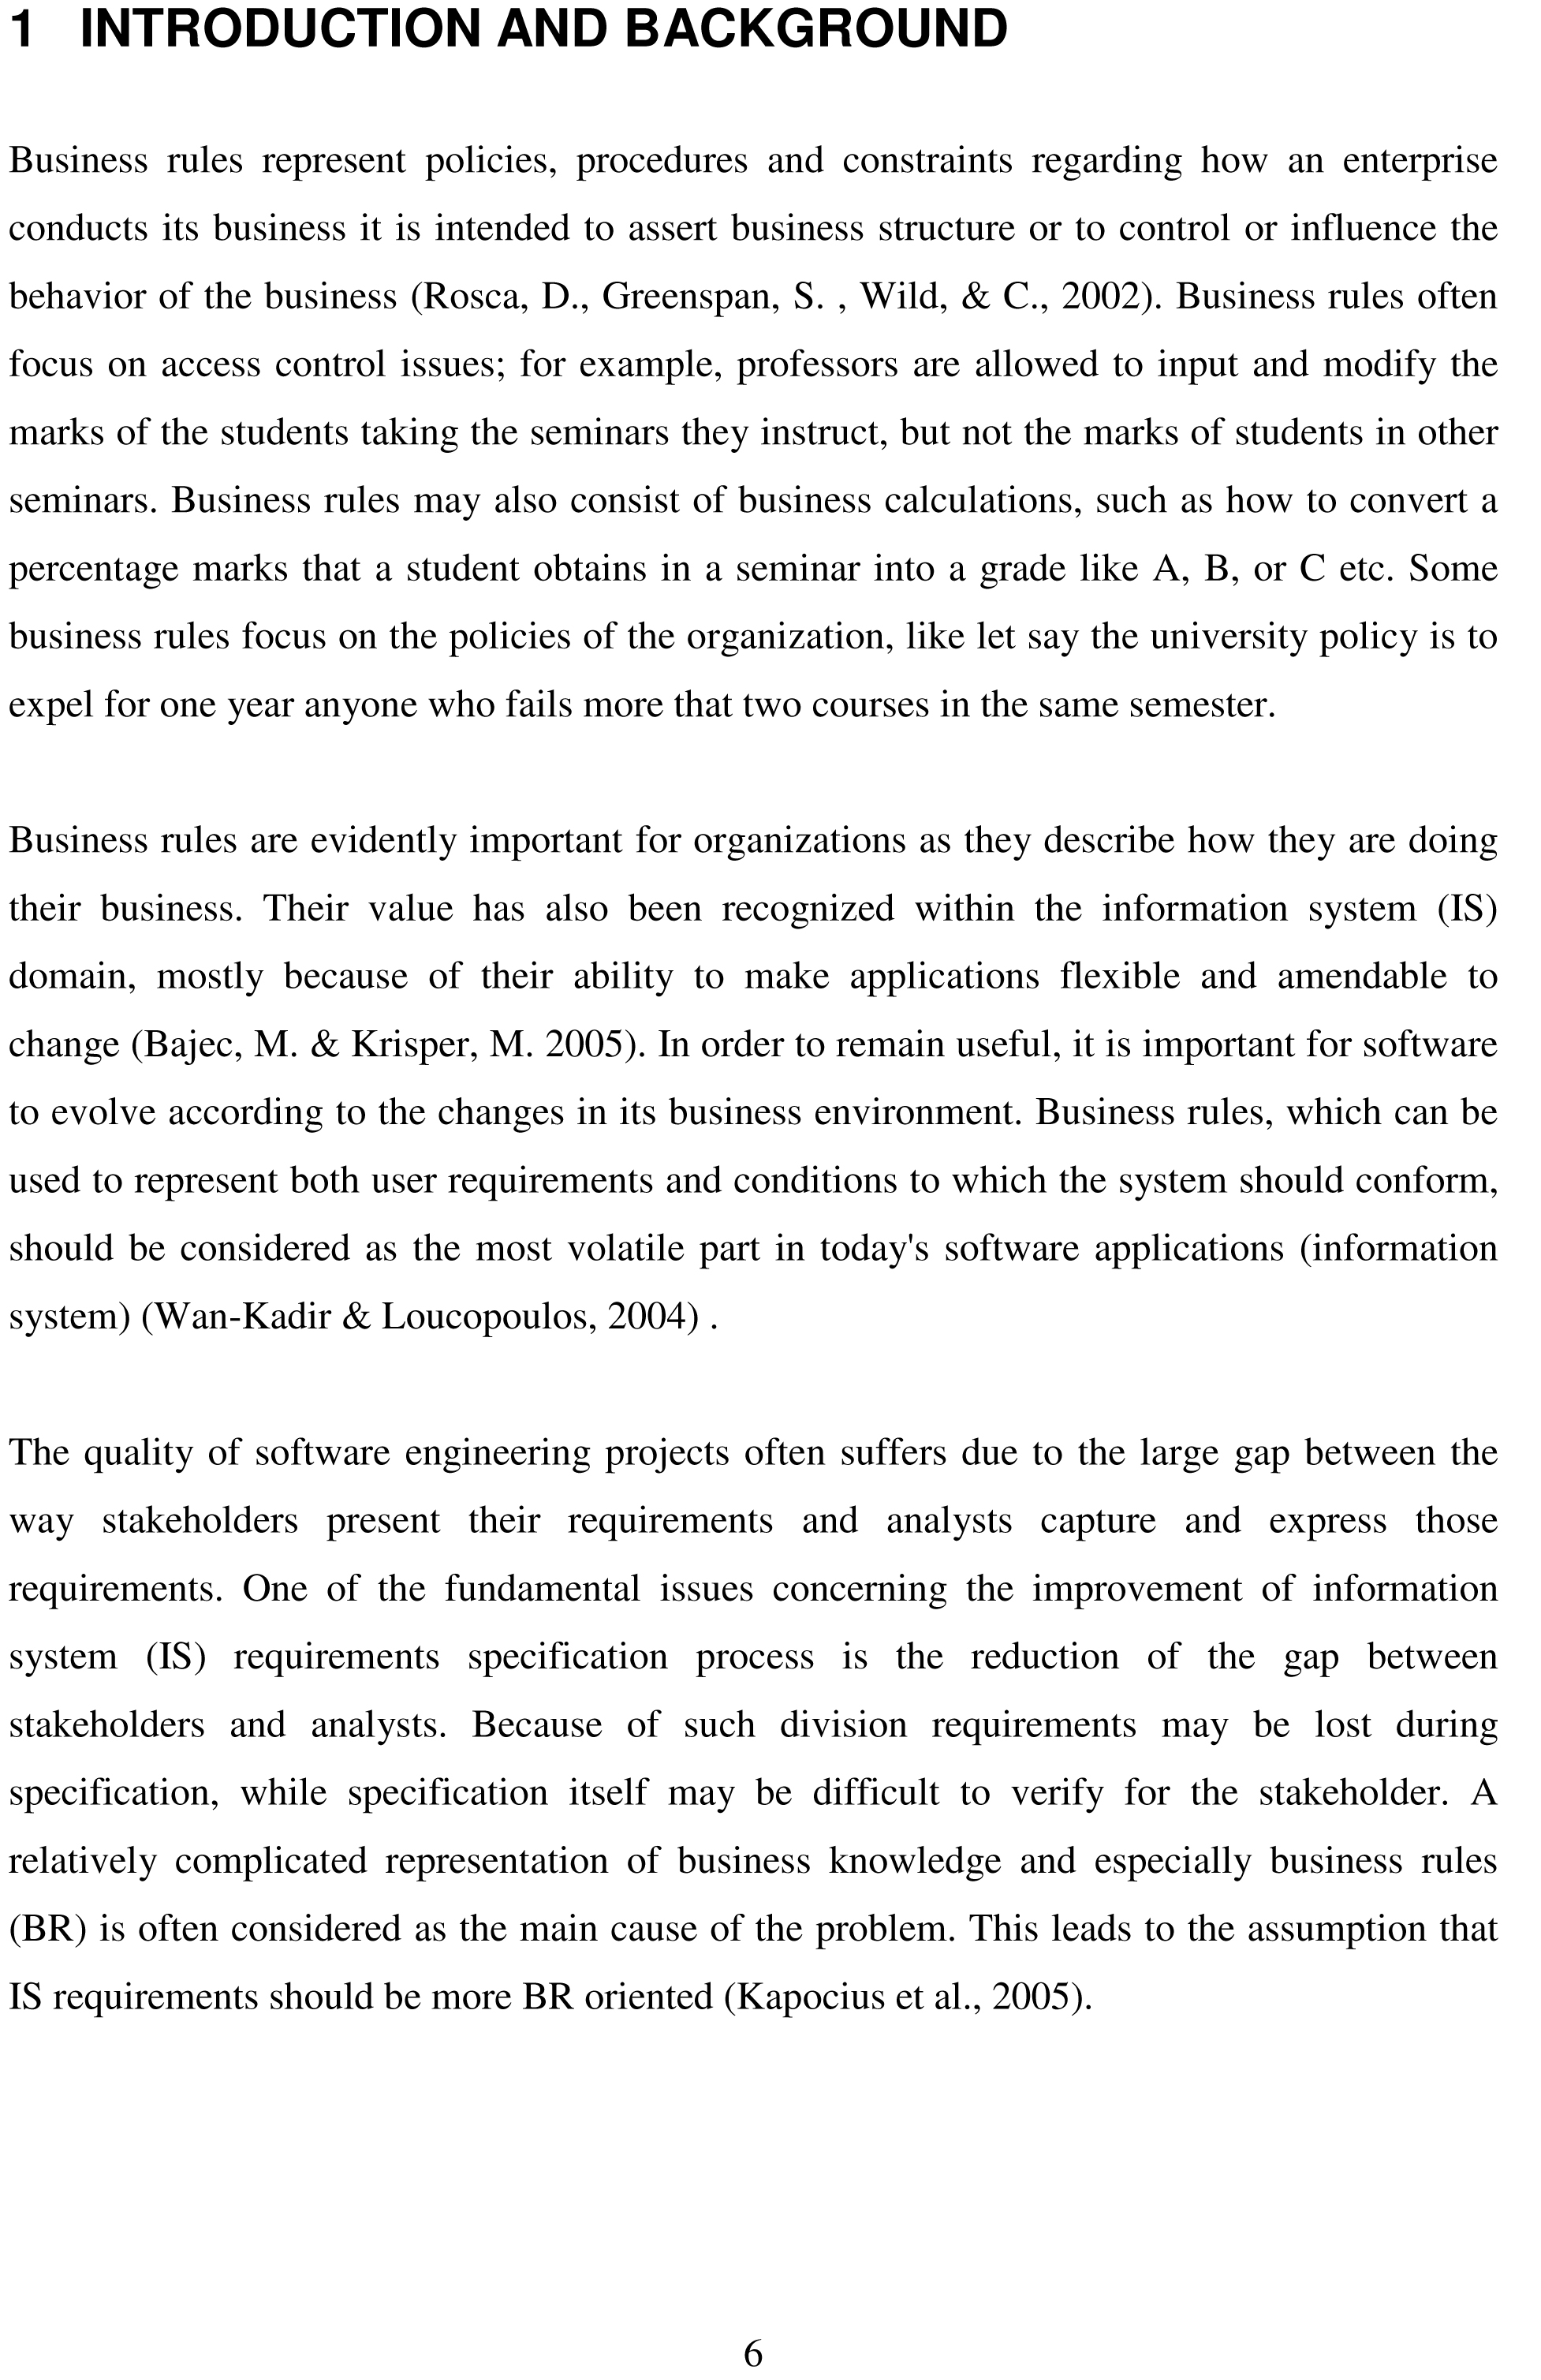 014 Thesis Free Sample1 Research Paper Example Of Simple Fantastic A Pdf Full